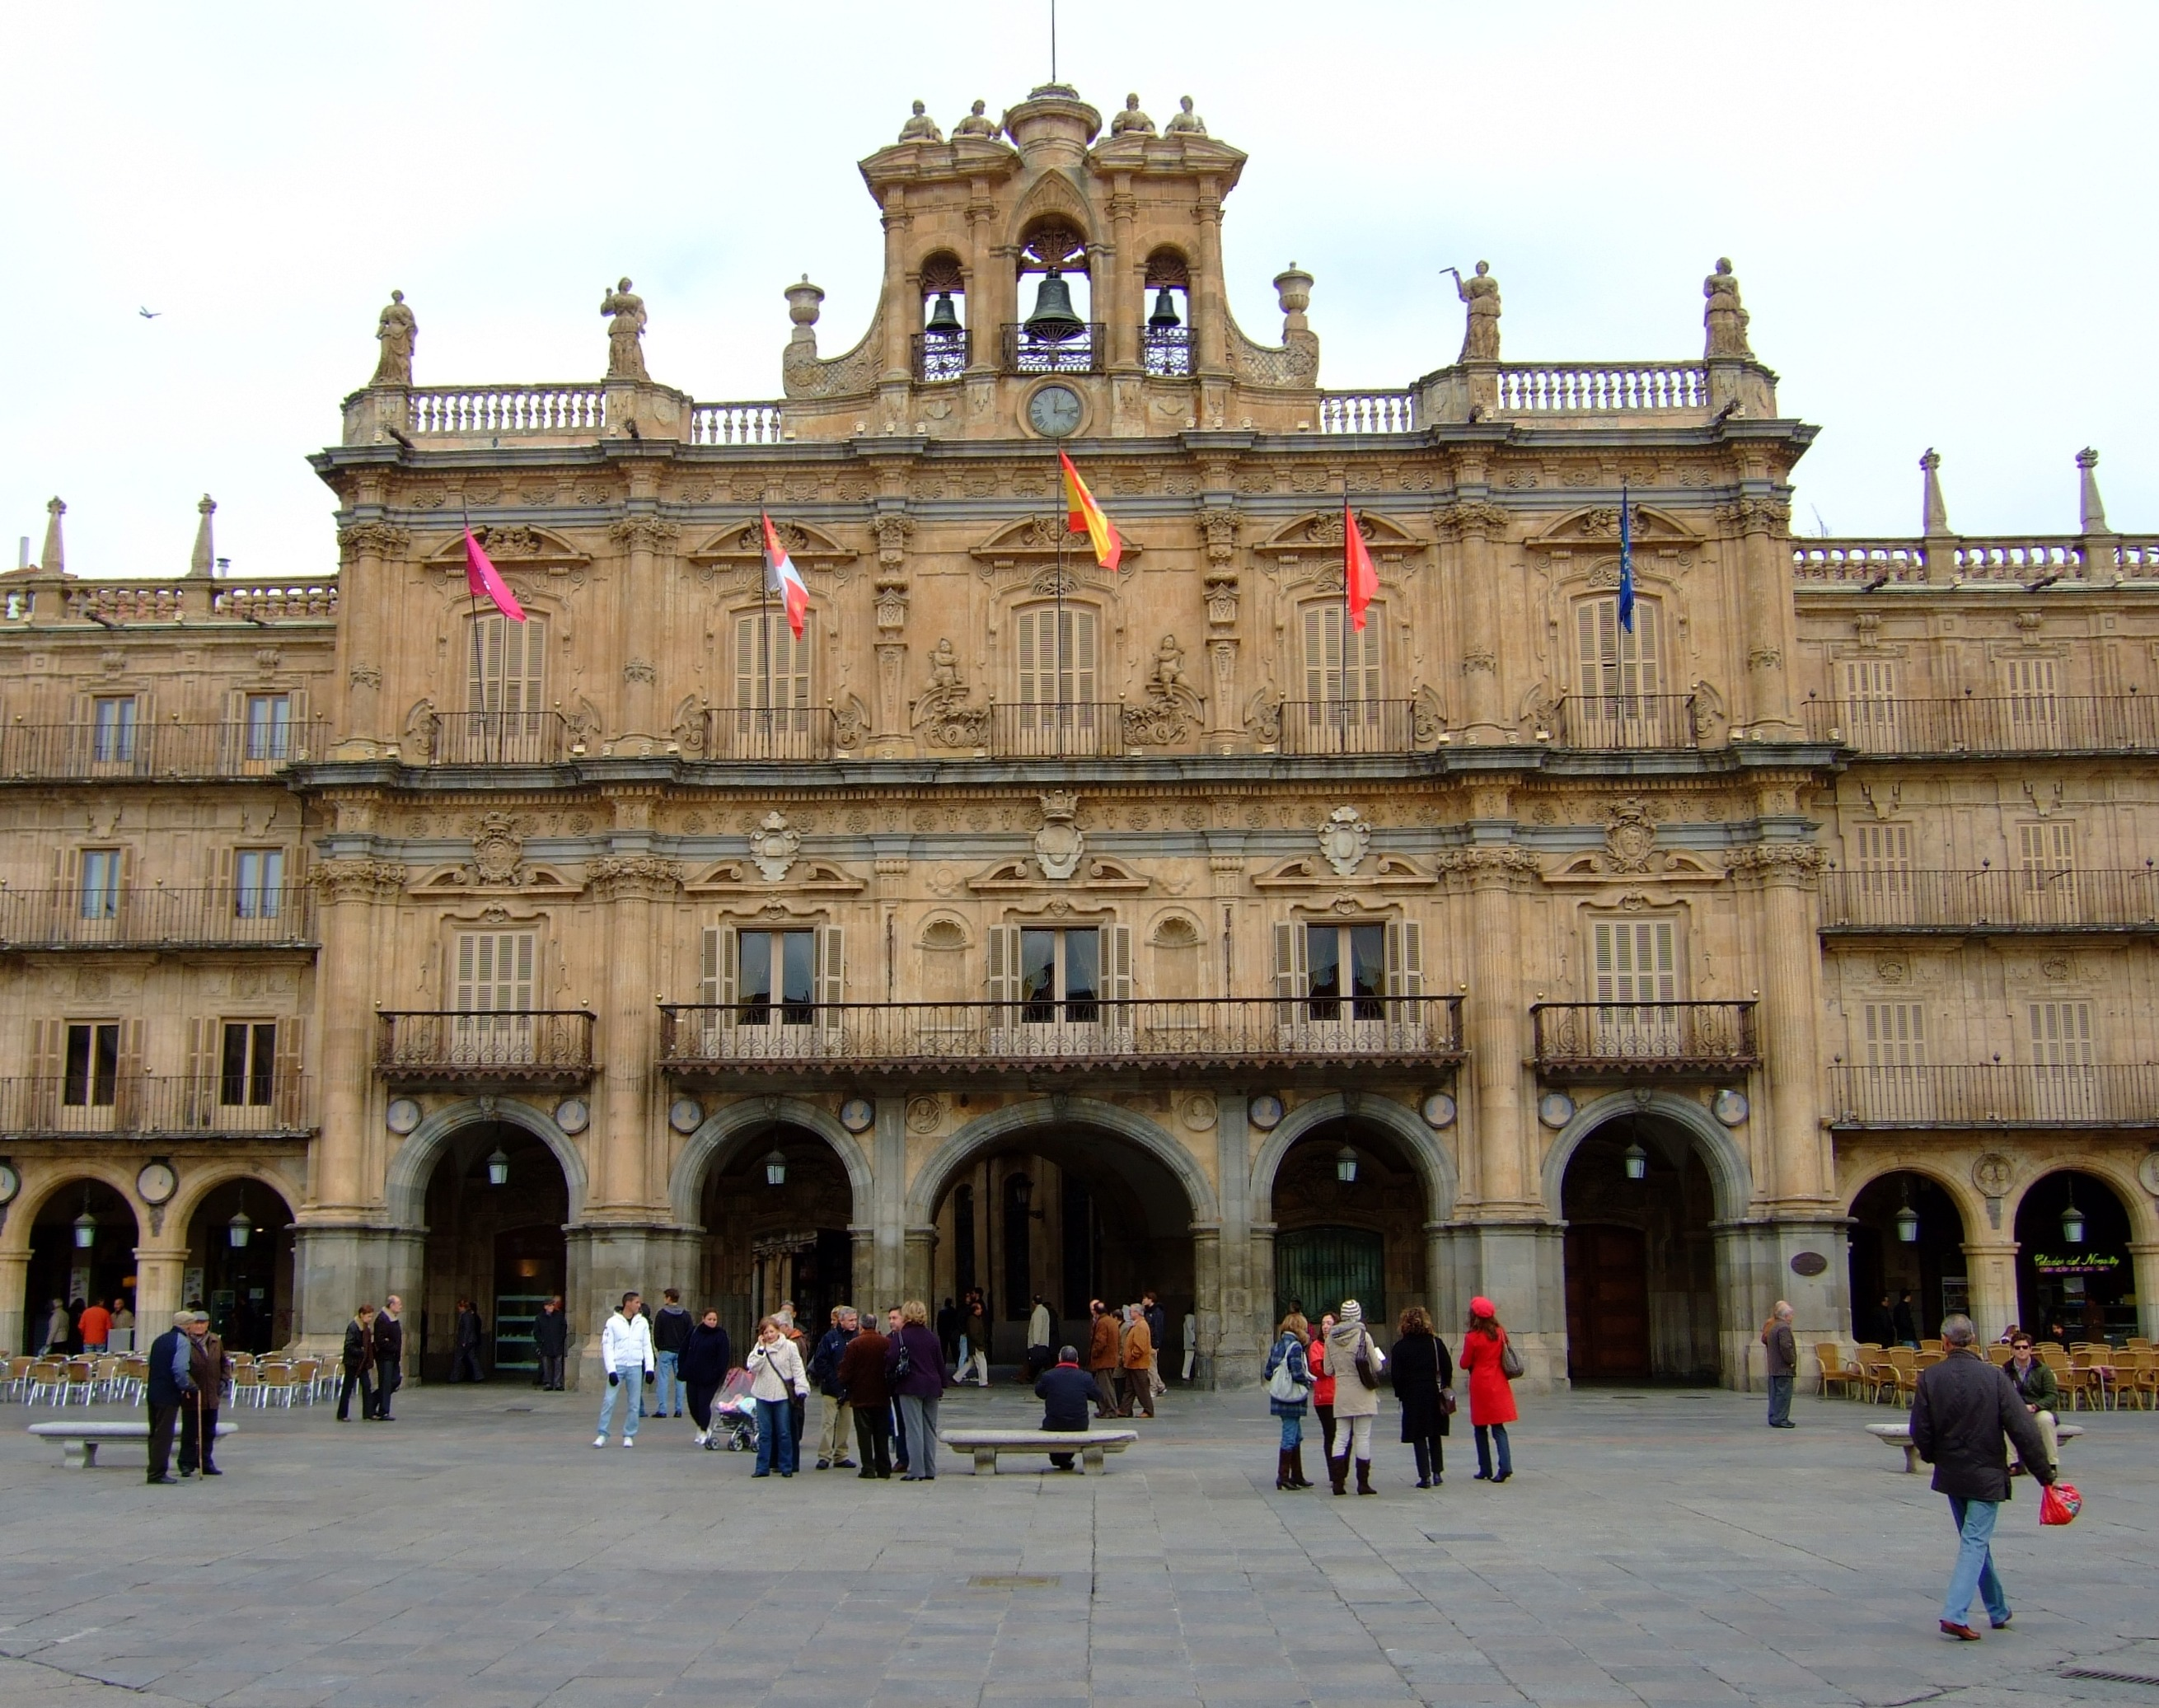 File:Salamanca España Arquitectura Plaza Mayor.jpg - Wikimedia Commons